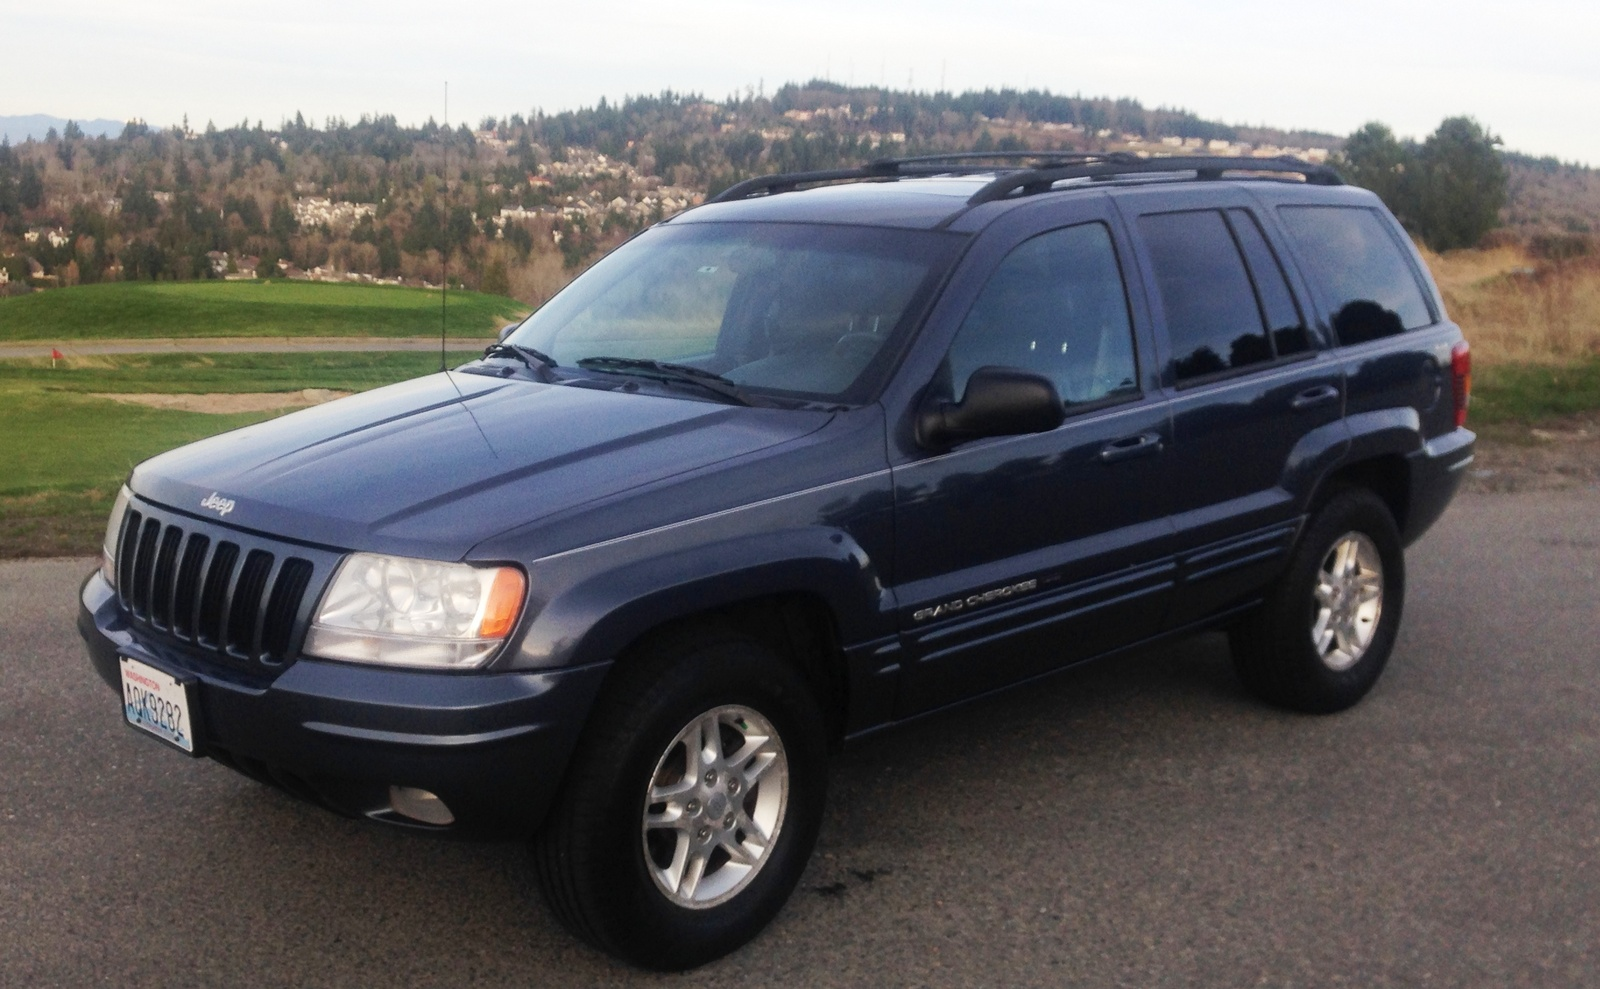 2000 Jeep Grand Cherokee - Pictures - CarGurus